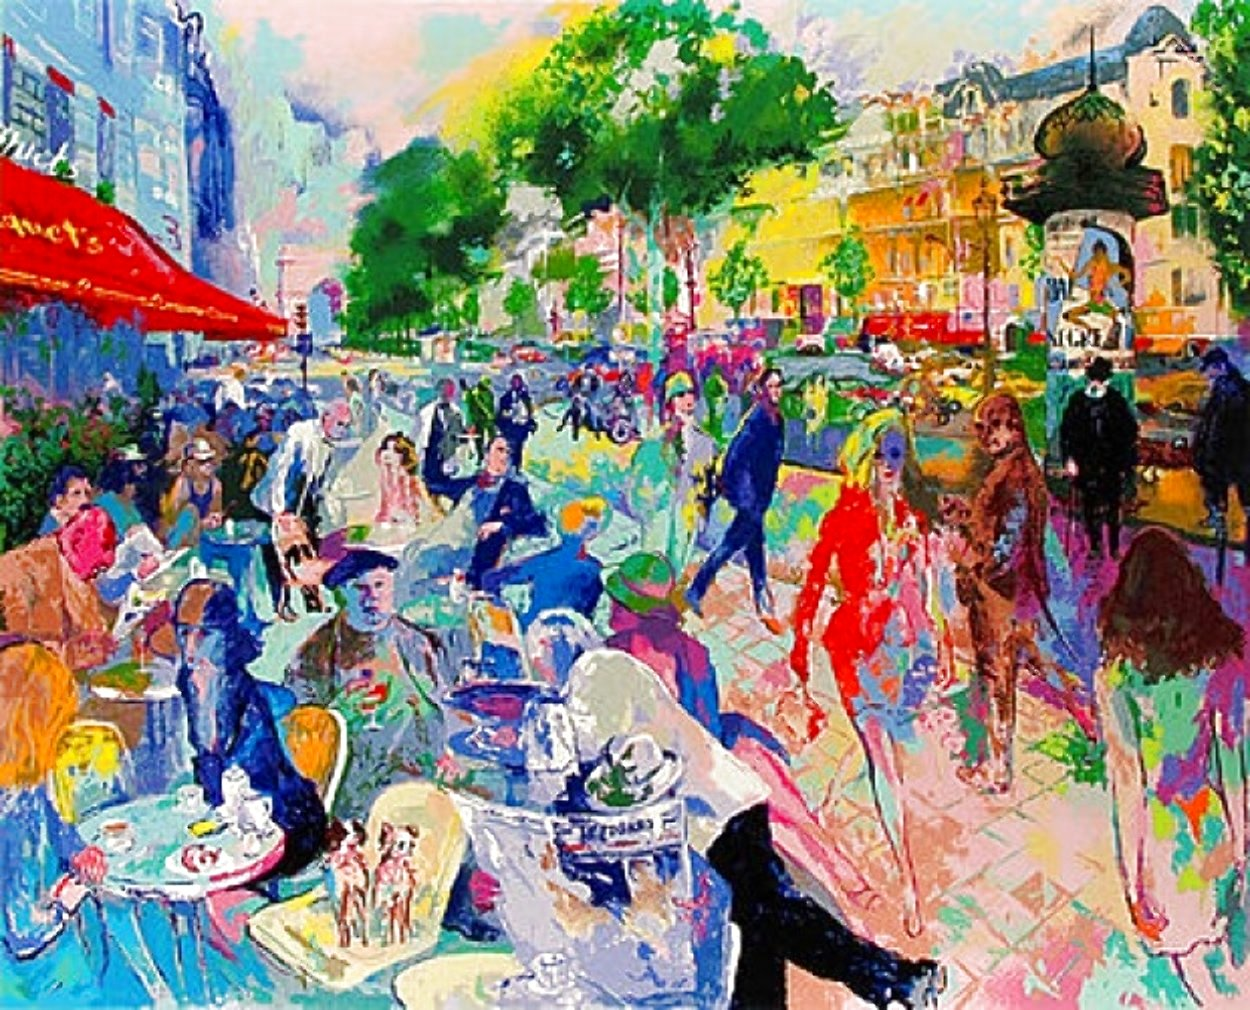 Fouquet's 1993 HS Limited Edition Print by LeRoy Neiman